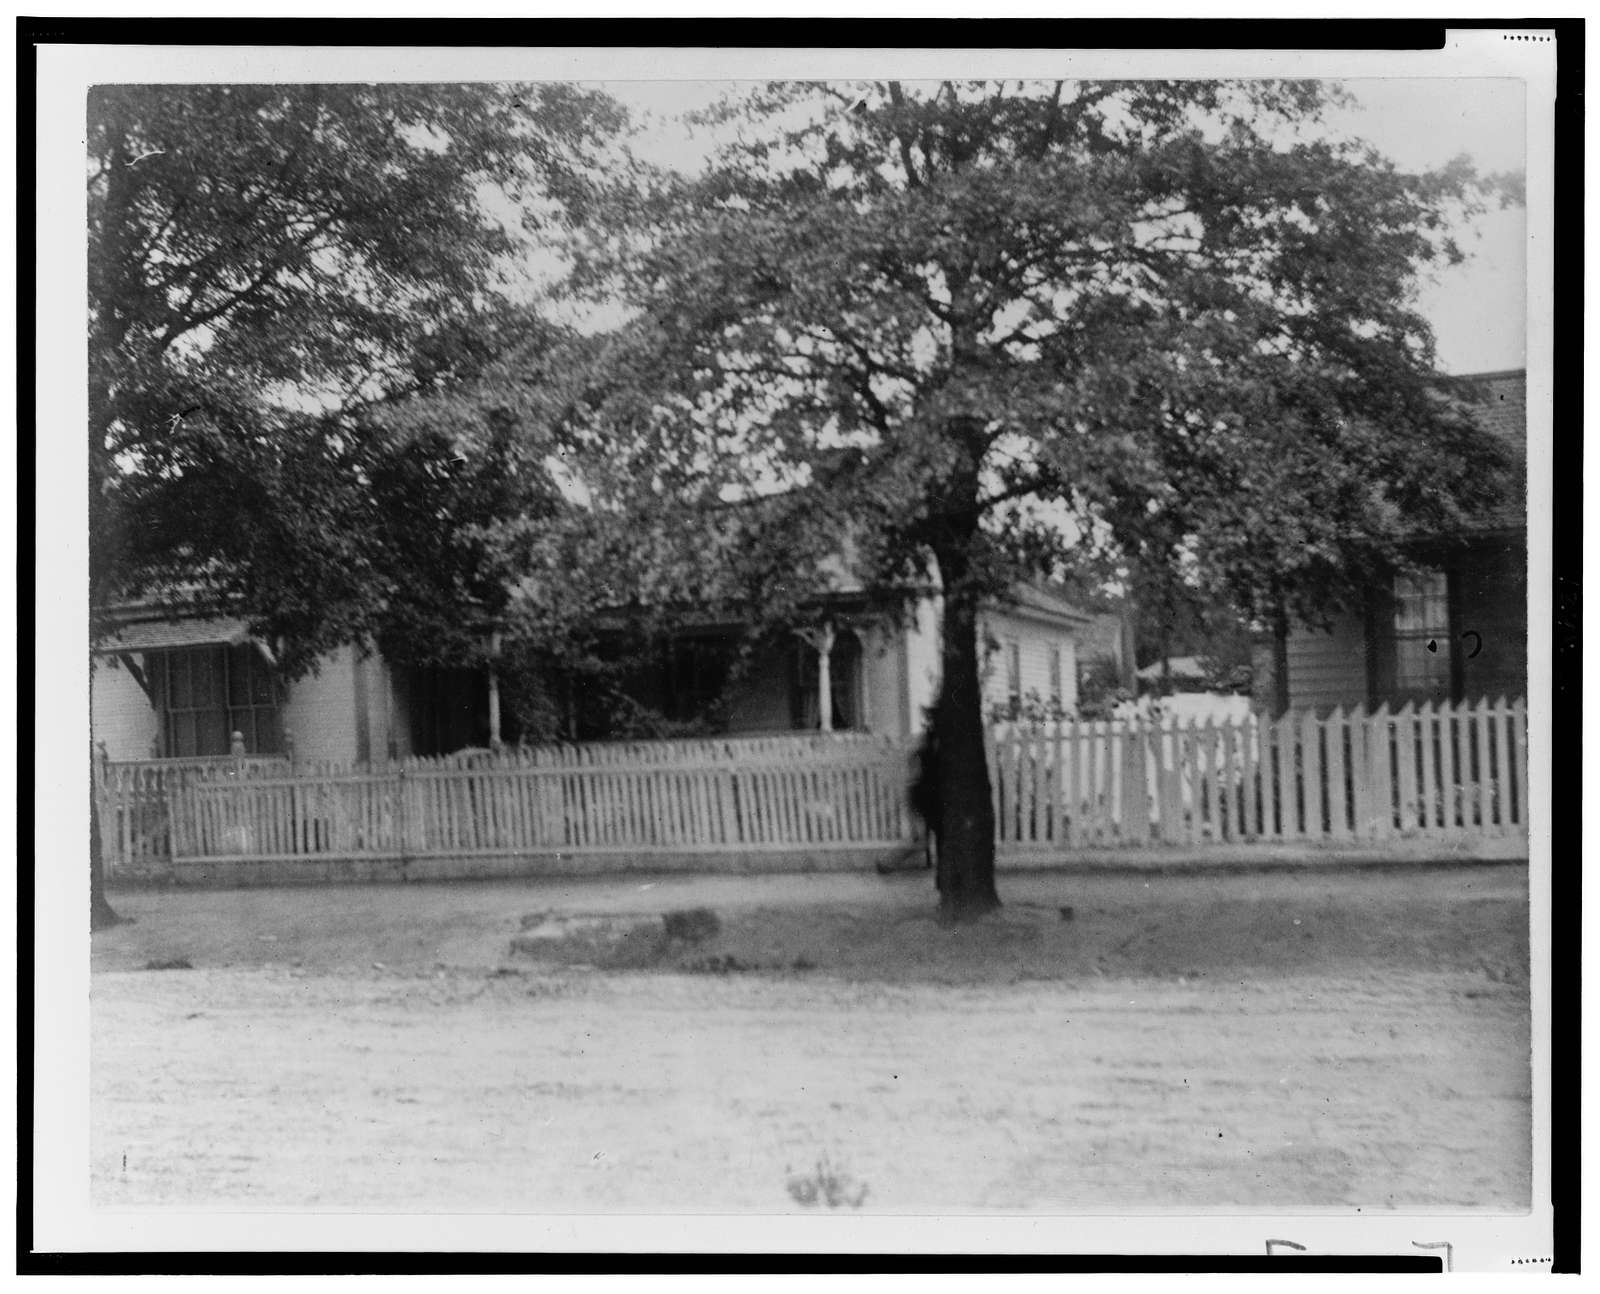 [Houses with picket fence on unpaved road in Georgia]